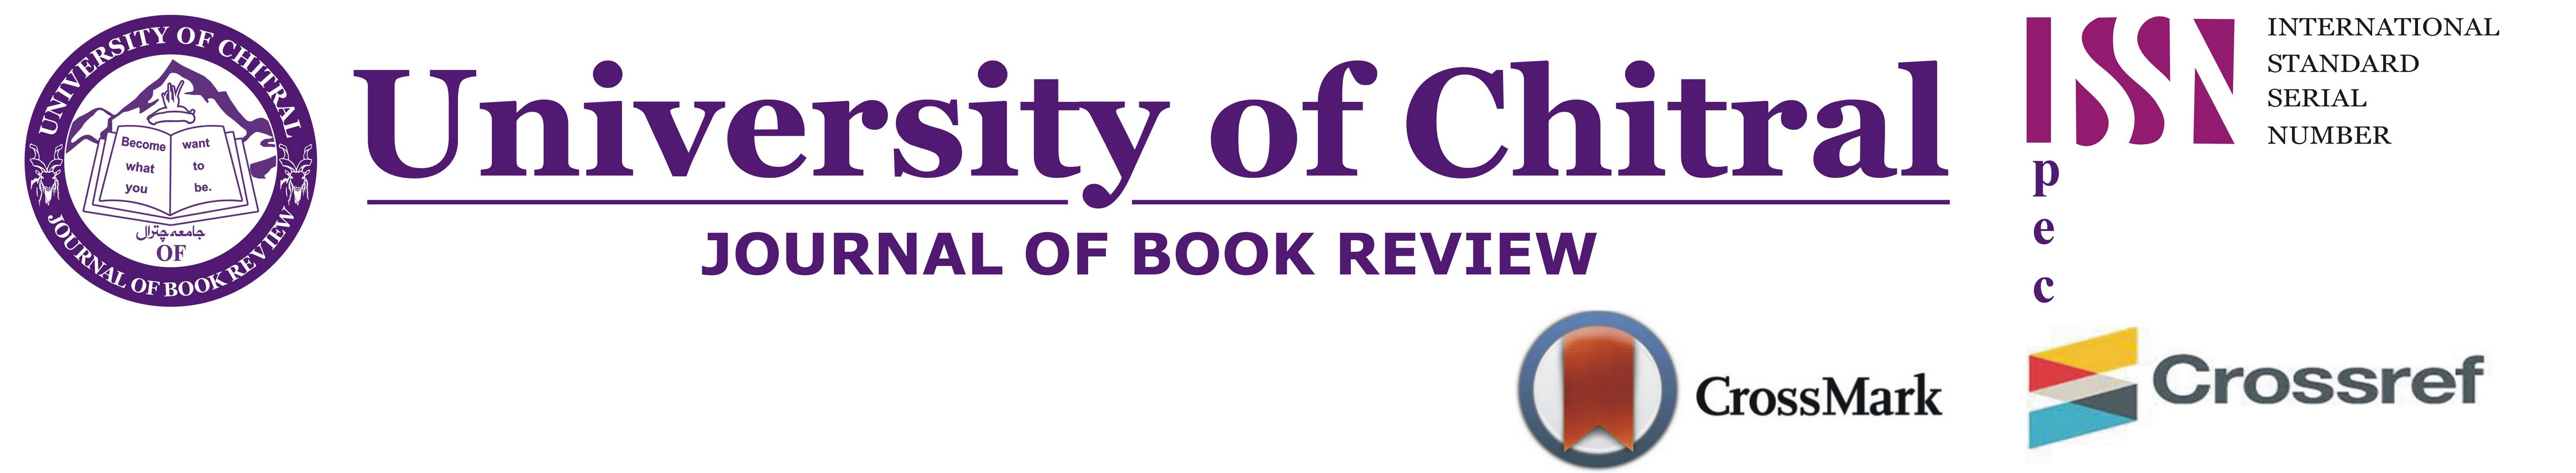 JOURNAL OF BOOK REVIEW